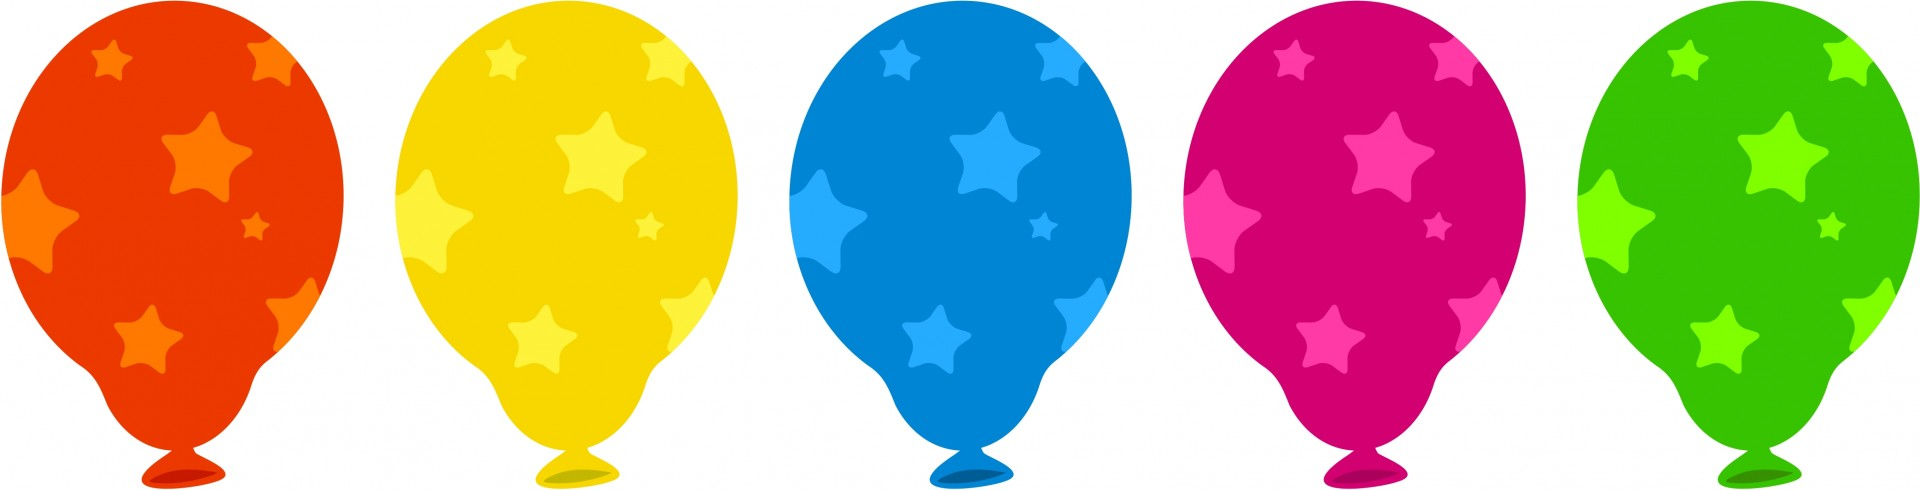 1920x490 Free Birthday Balloon Clip Art Free Clipart Images